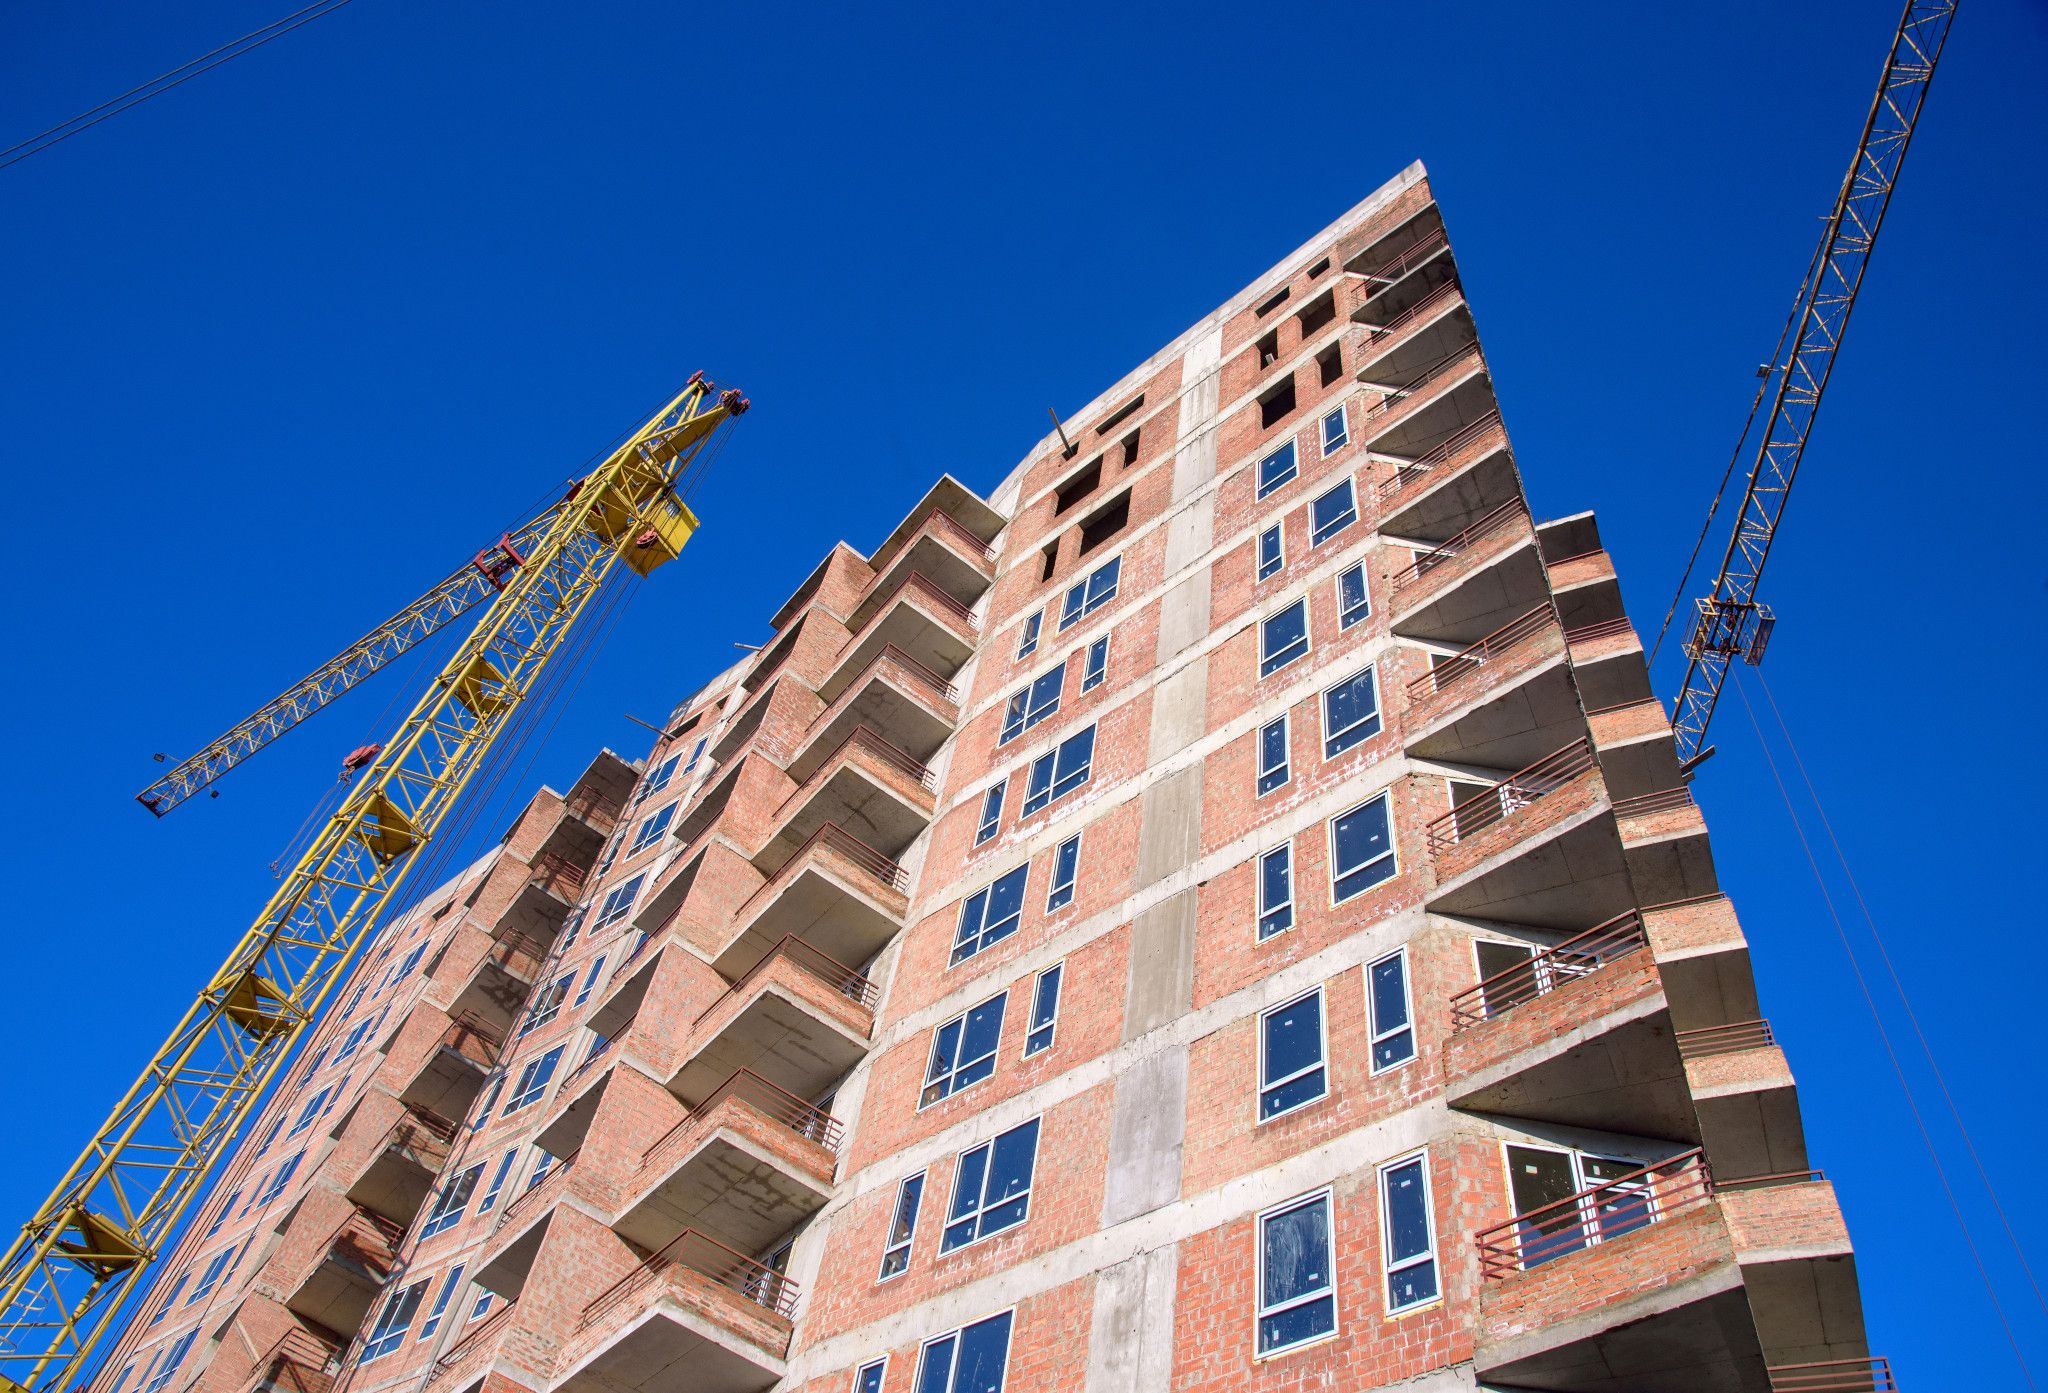 A construction materials shortage caused by the COVID-19 pandemic has plagued the U.S. commercial real estate industry. (iStock)